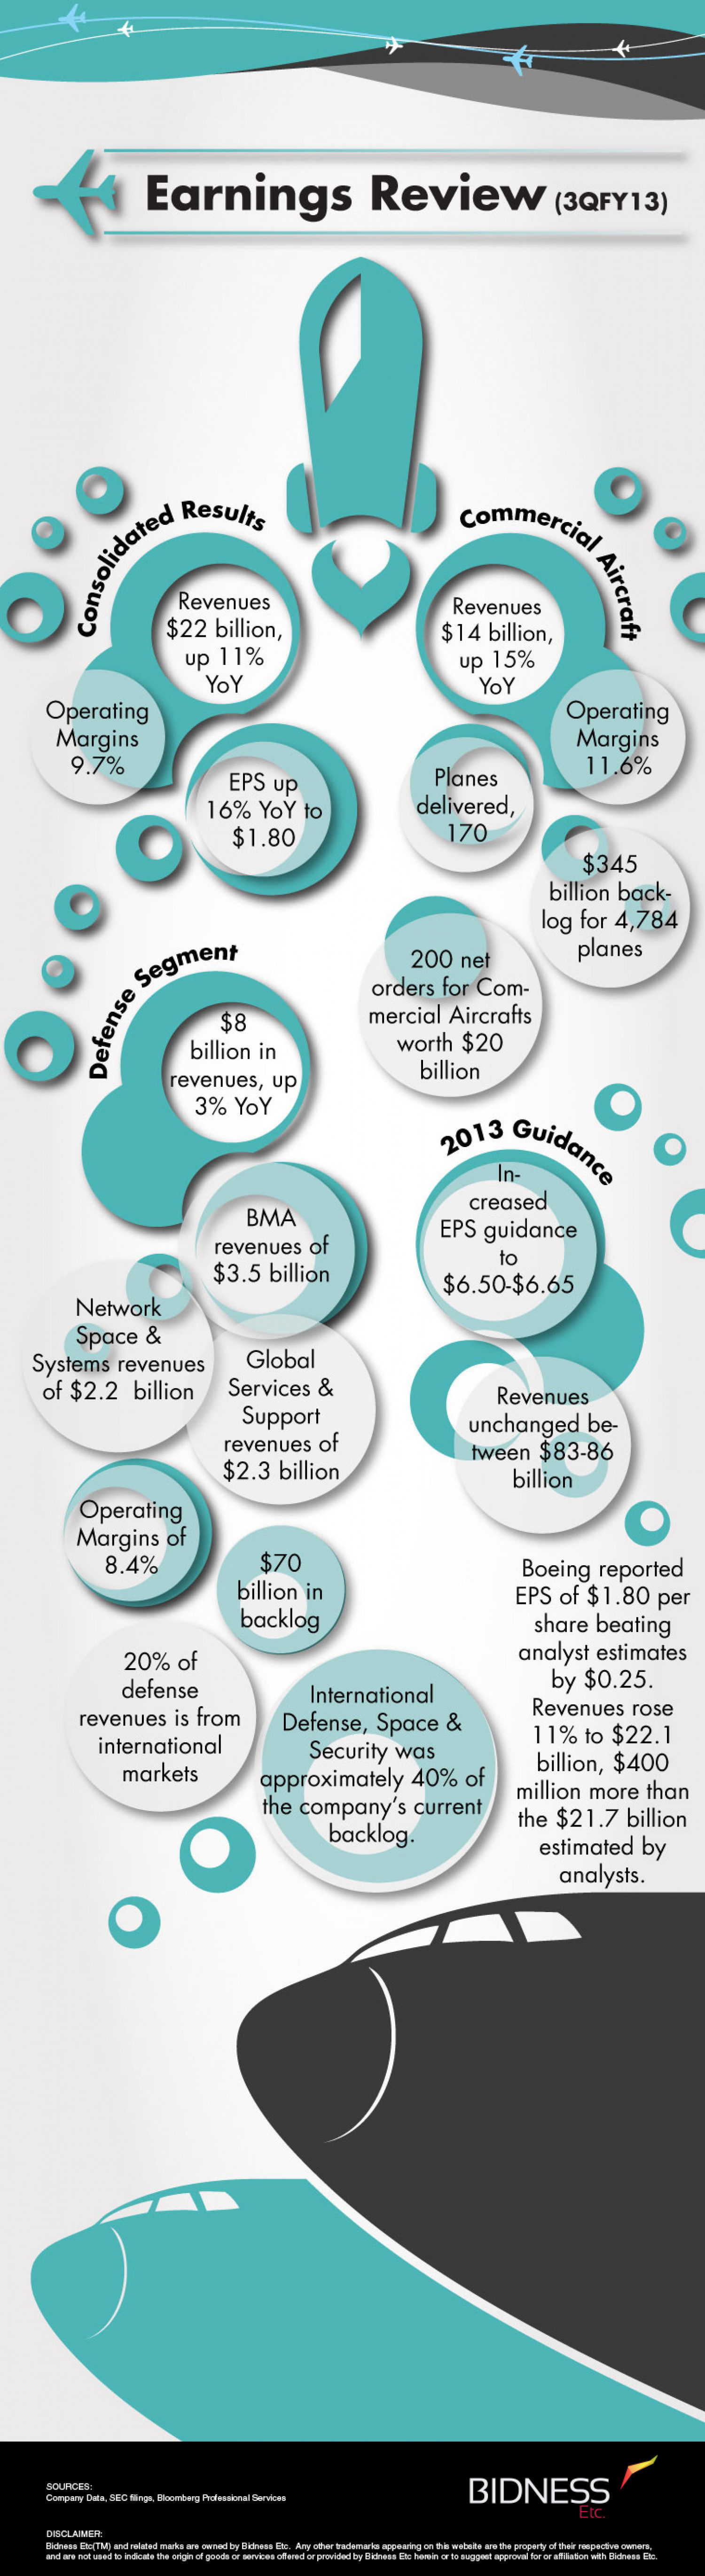 Boeing (BA) Earnings Review Infographic